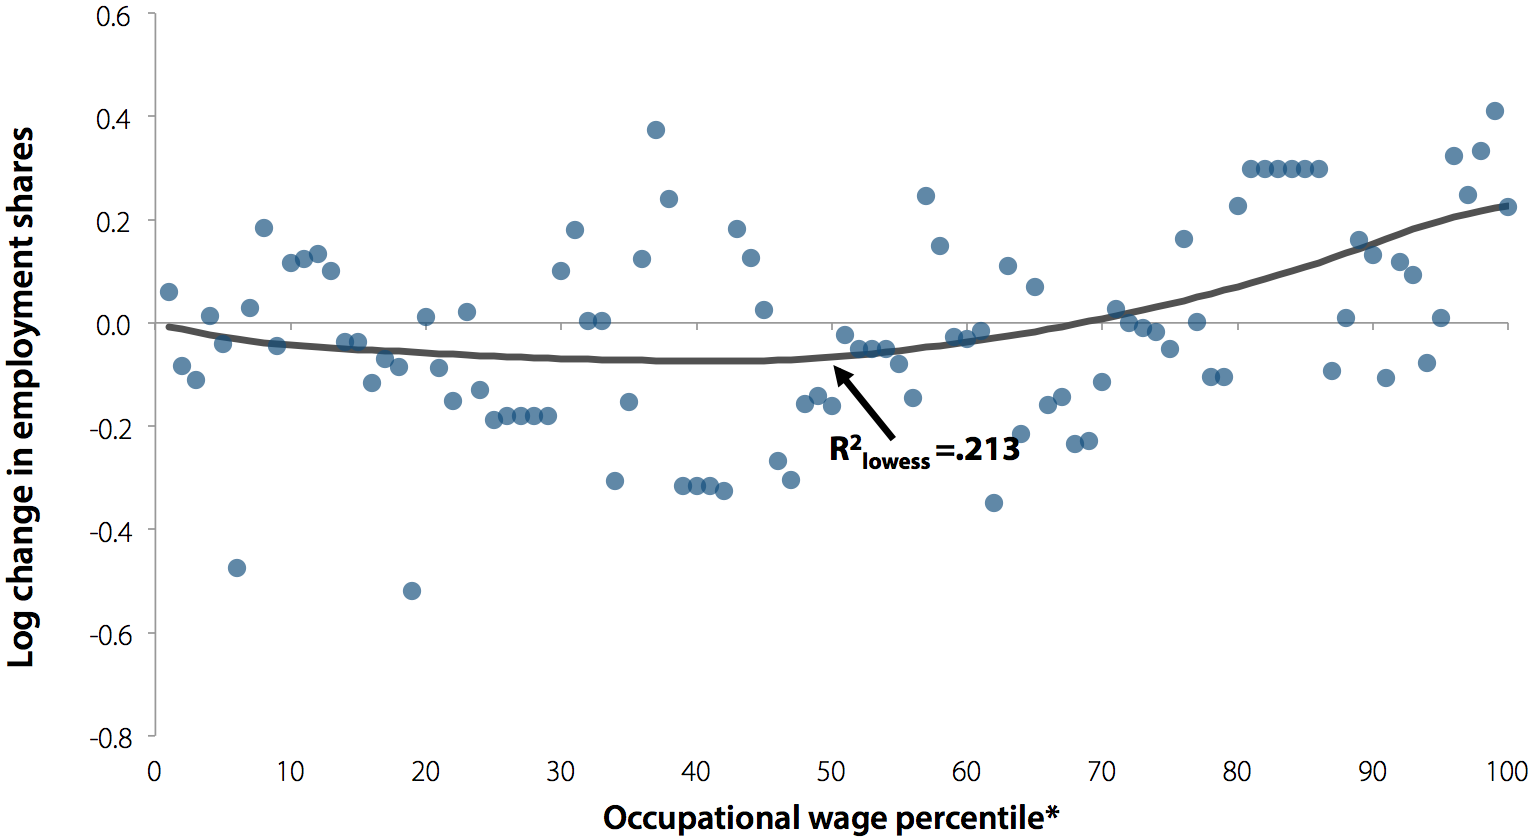 Change in log employment shares, by occupational wage percentile, 1979–1989